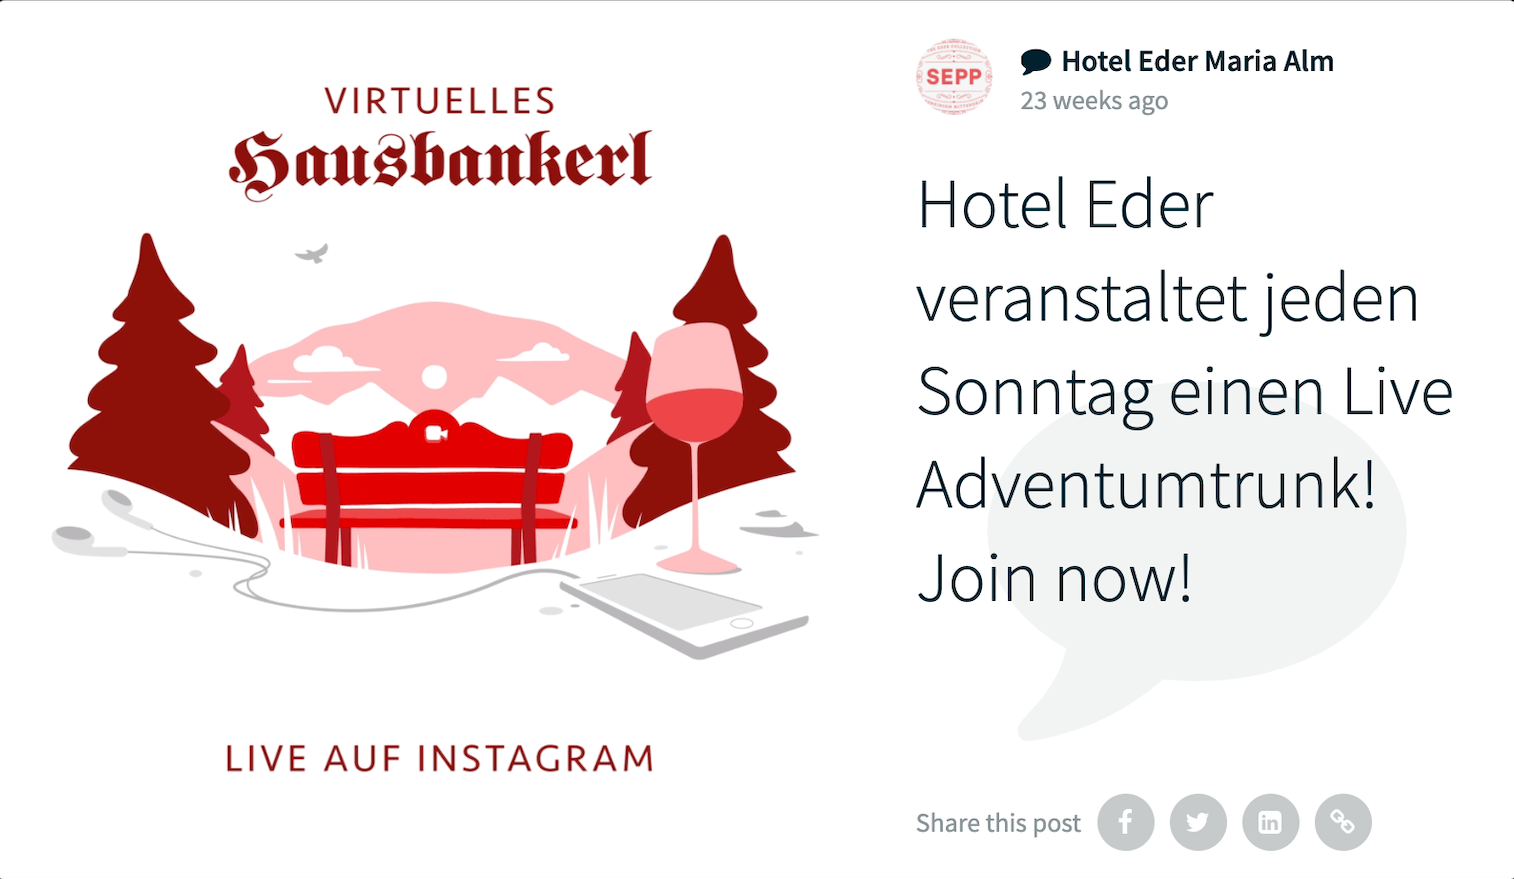 """Social media post on the social wall by Hotel Eder Maria Alm; the image shows the Virtuelles Hausbankerl logo and says """"Live auf Instagram"""". The caption reads: Hotel Eder veranstaltet jeden Sonntag einen Live Adventumtrunk! Join now!"""